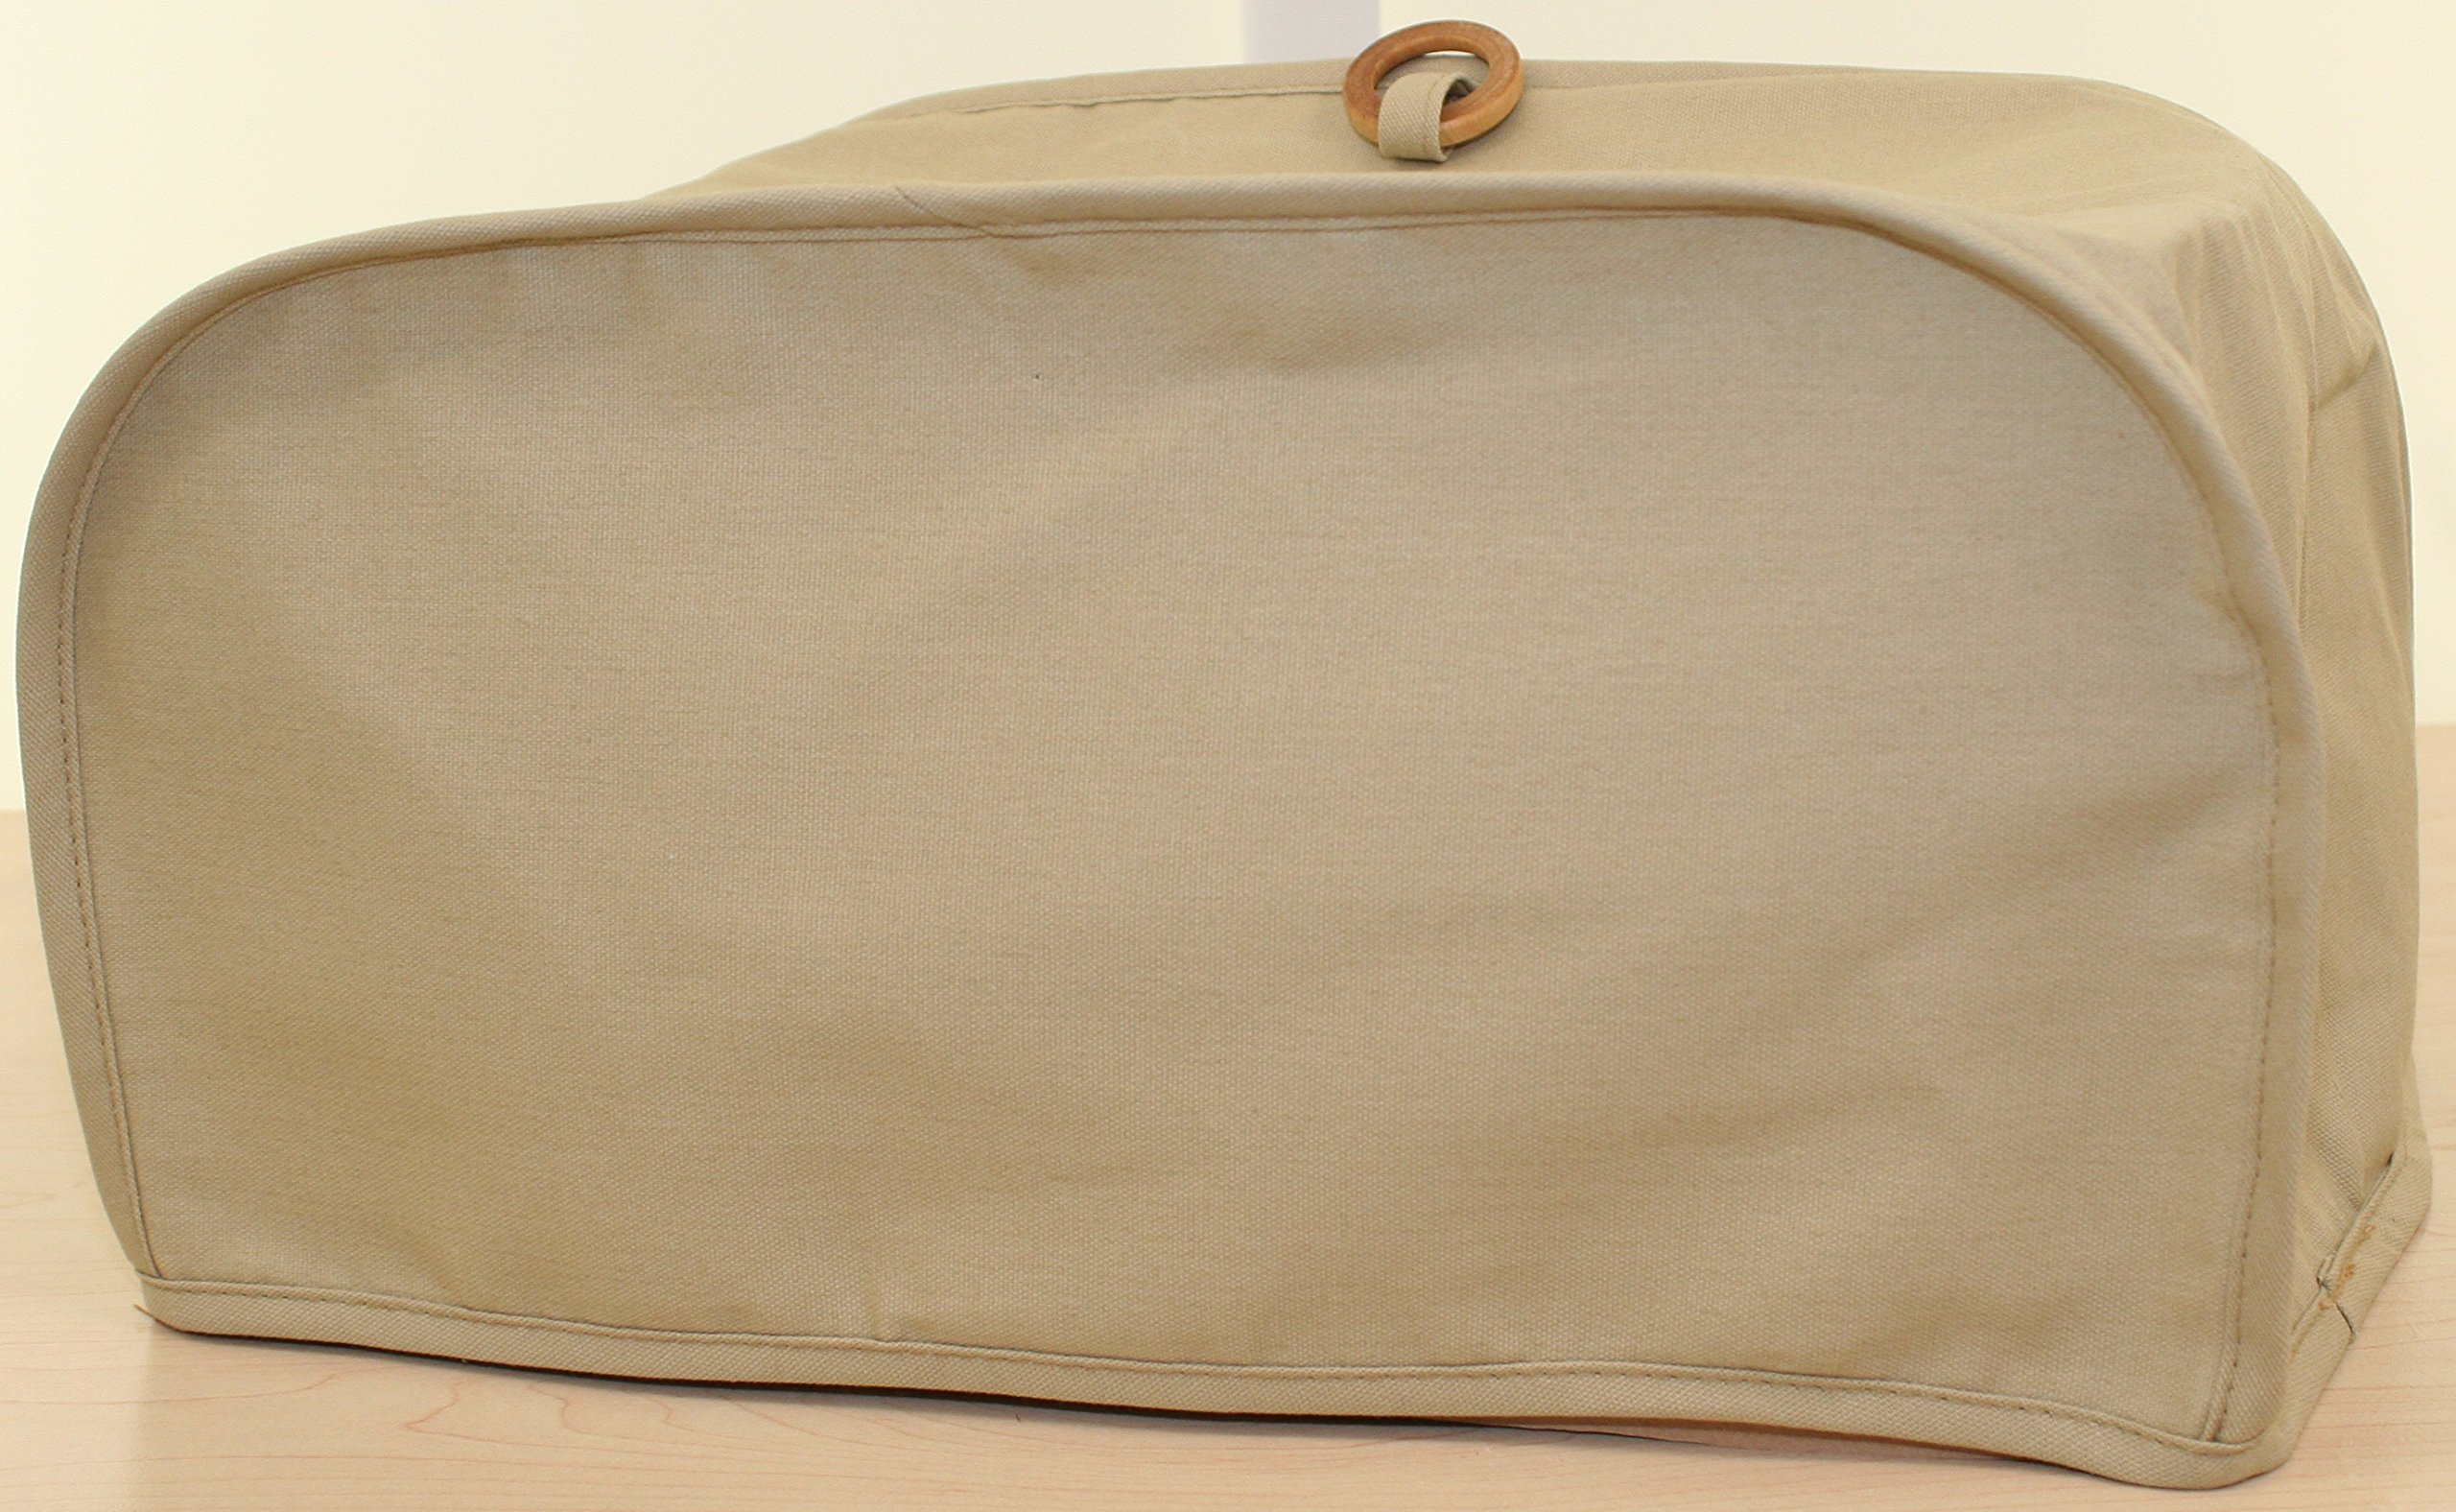 America At Home Toaster Oven Cover Tan